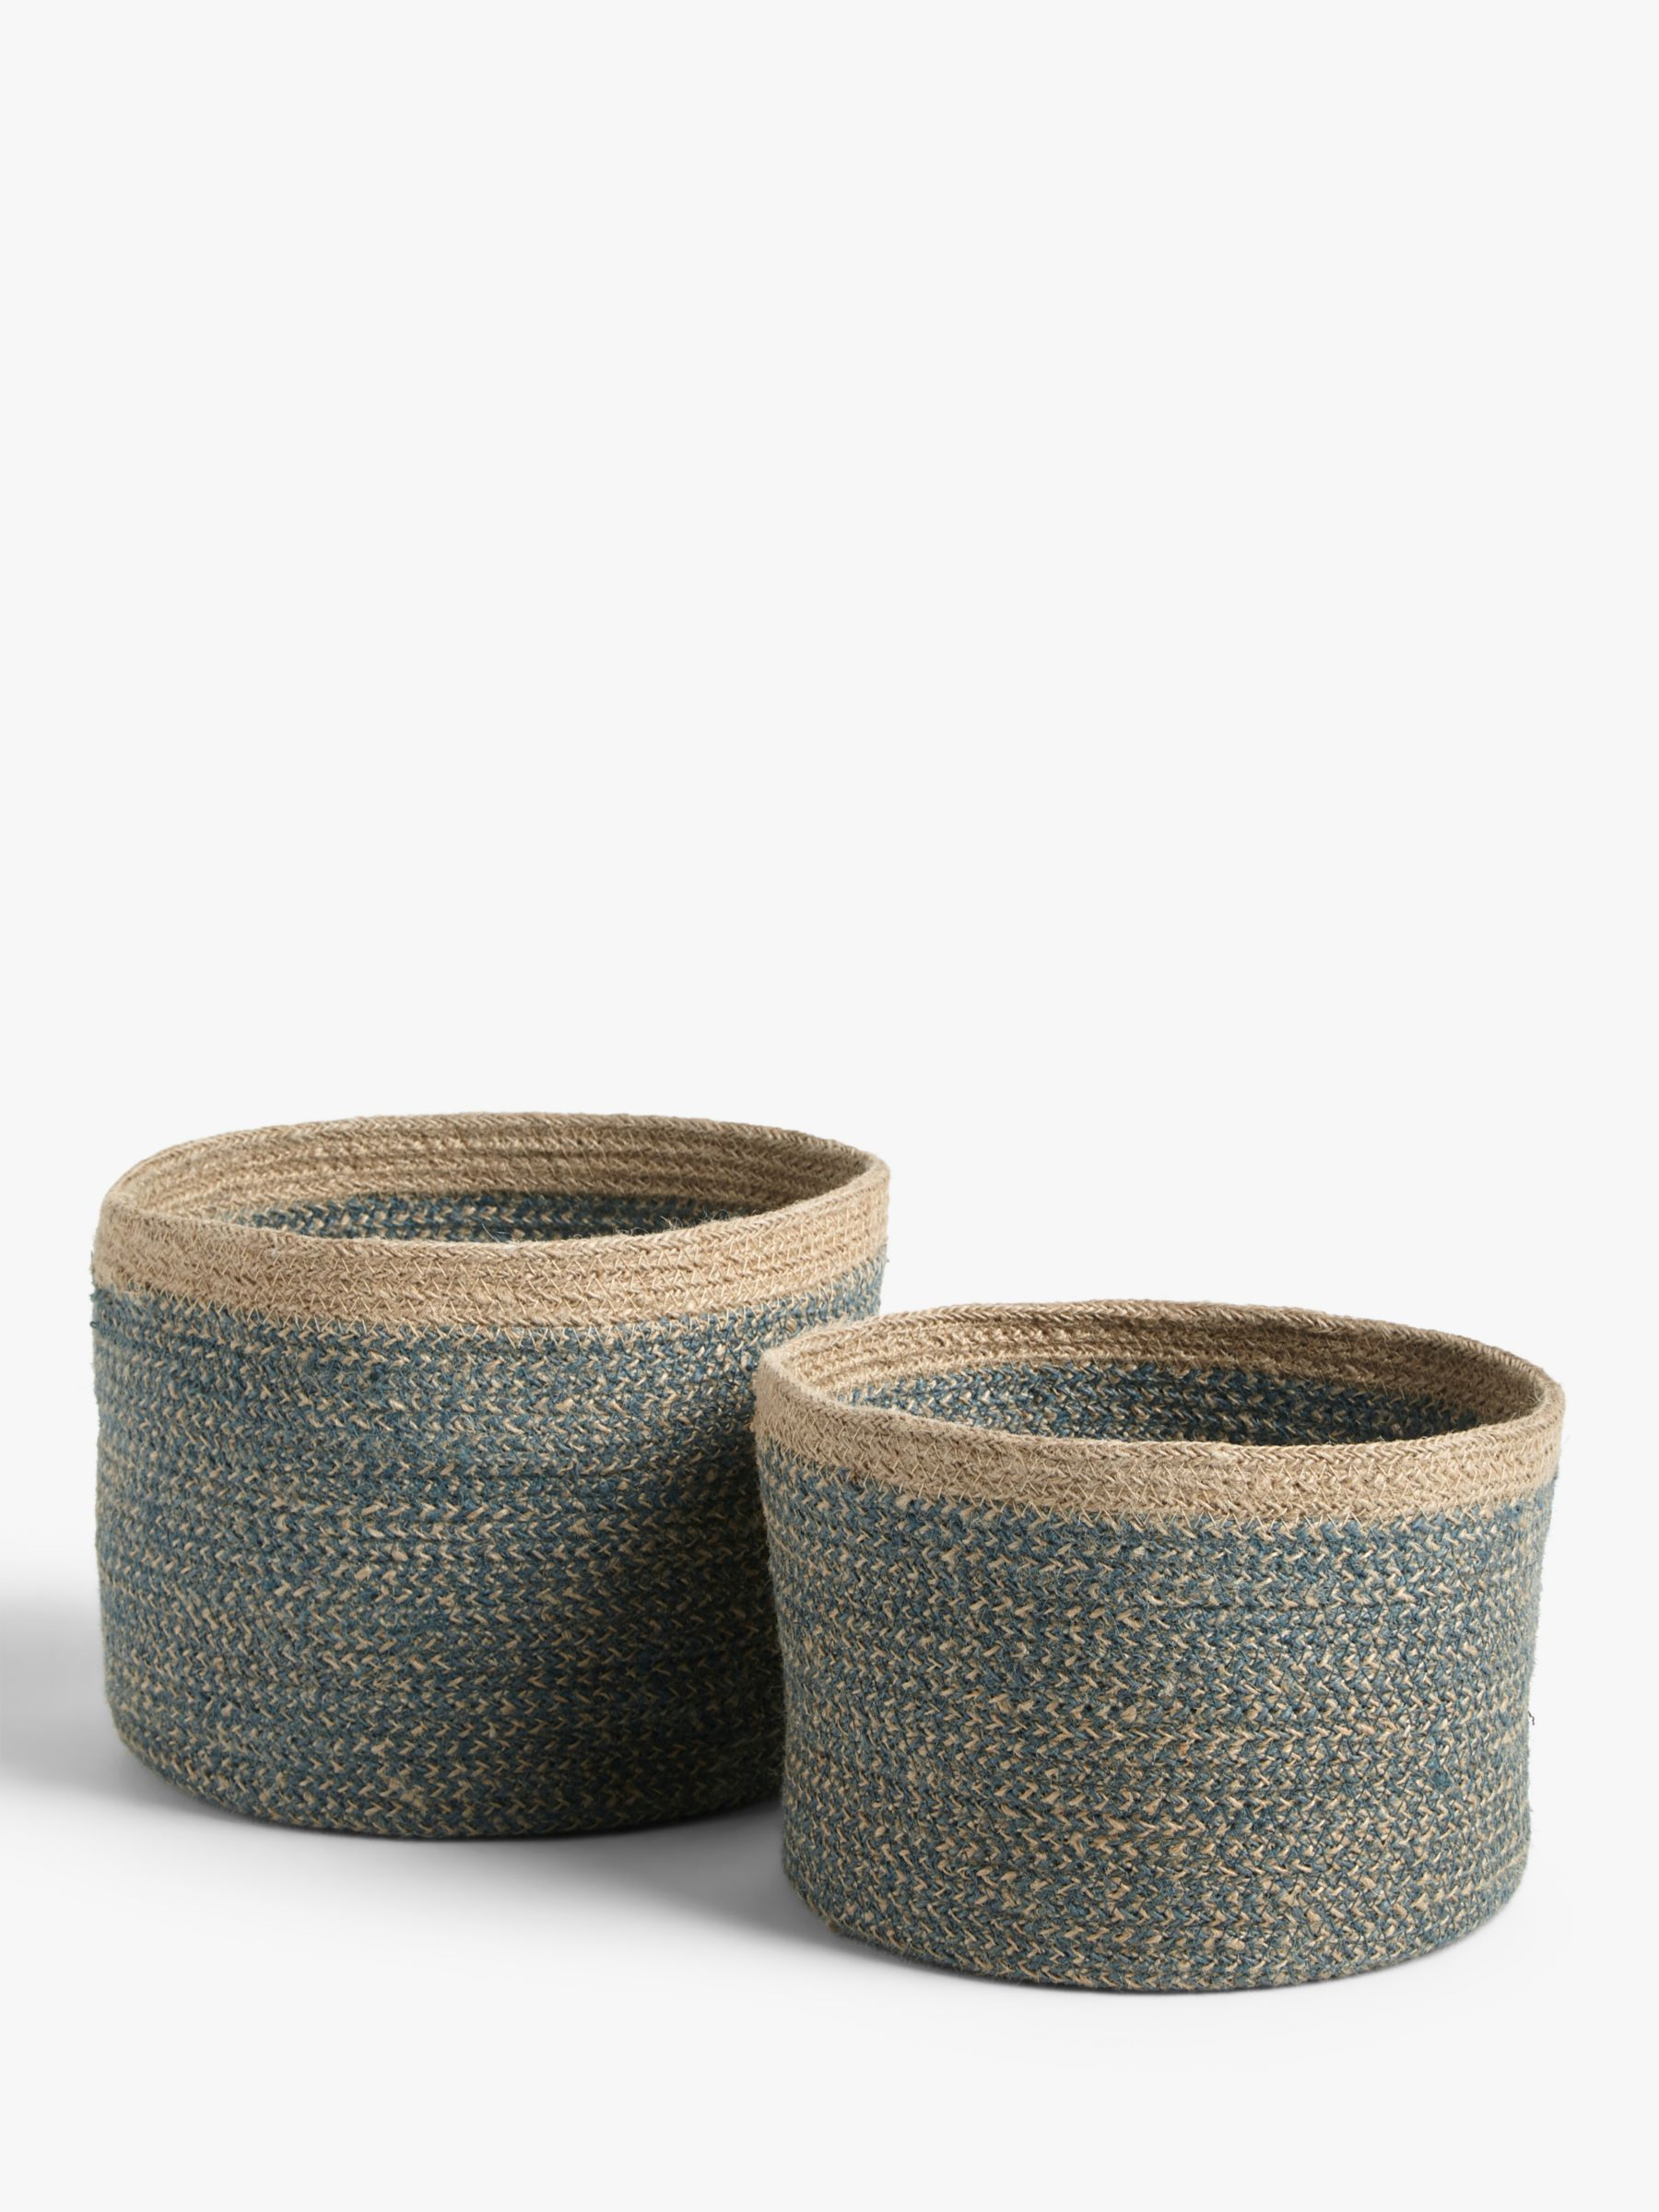 John Lewis & Partners Jute Basket, Set of 2, Blue